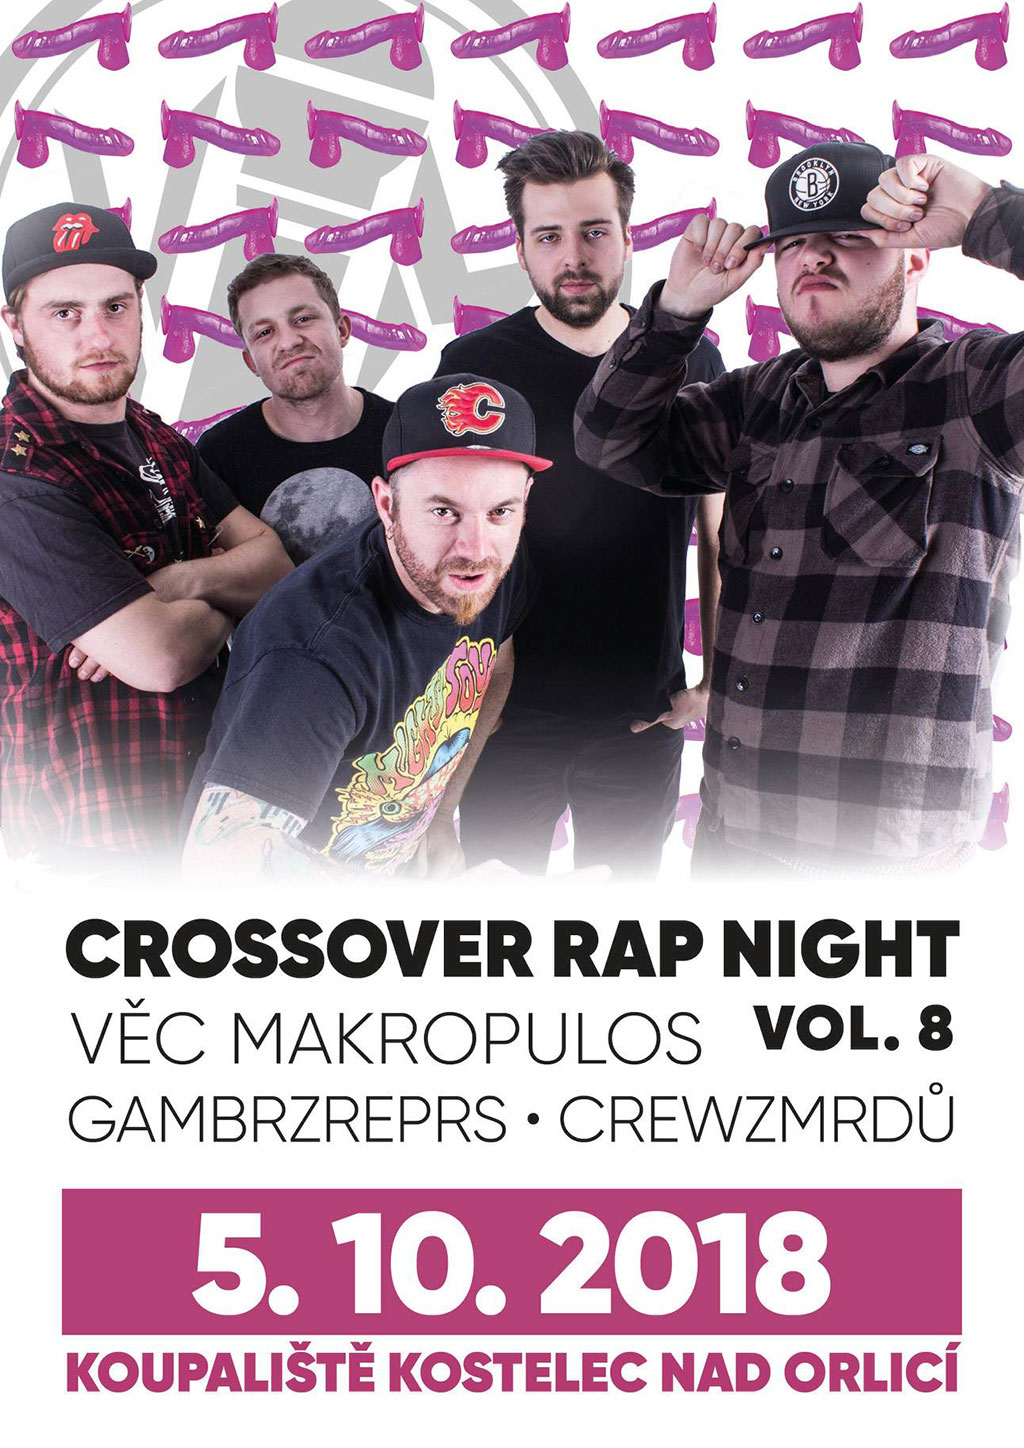 Crossover Rap Night vol. 8